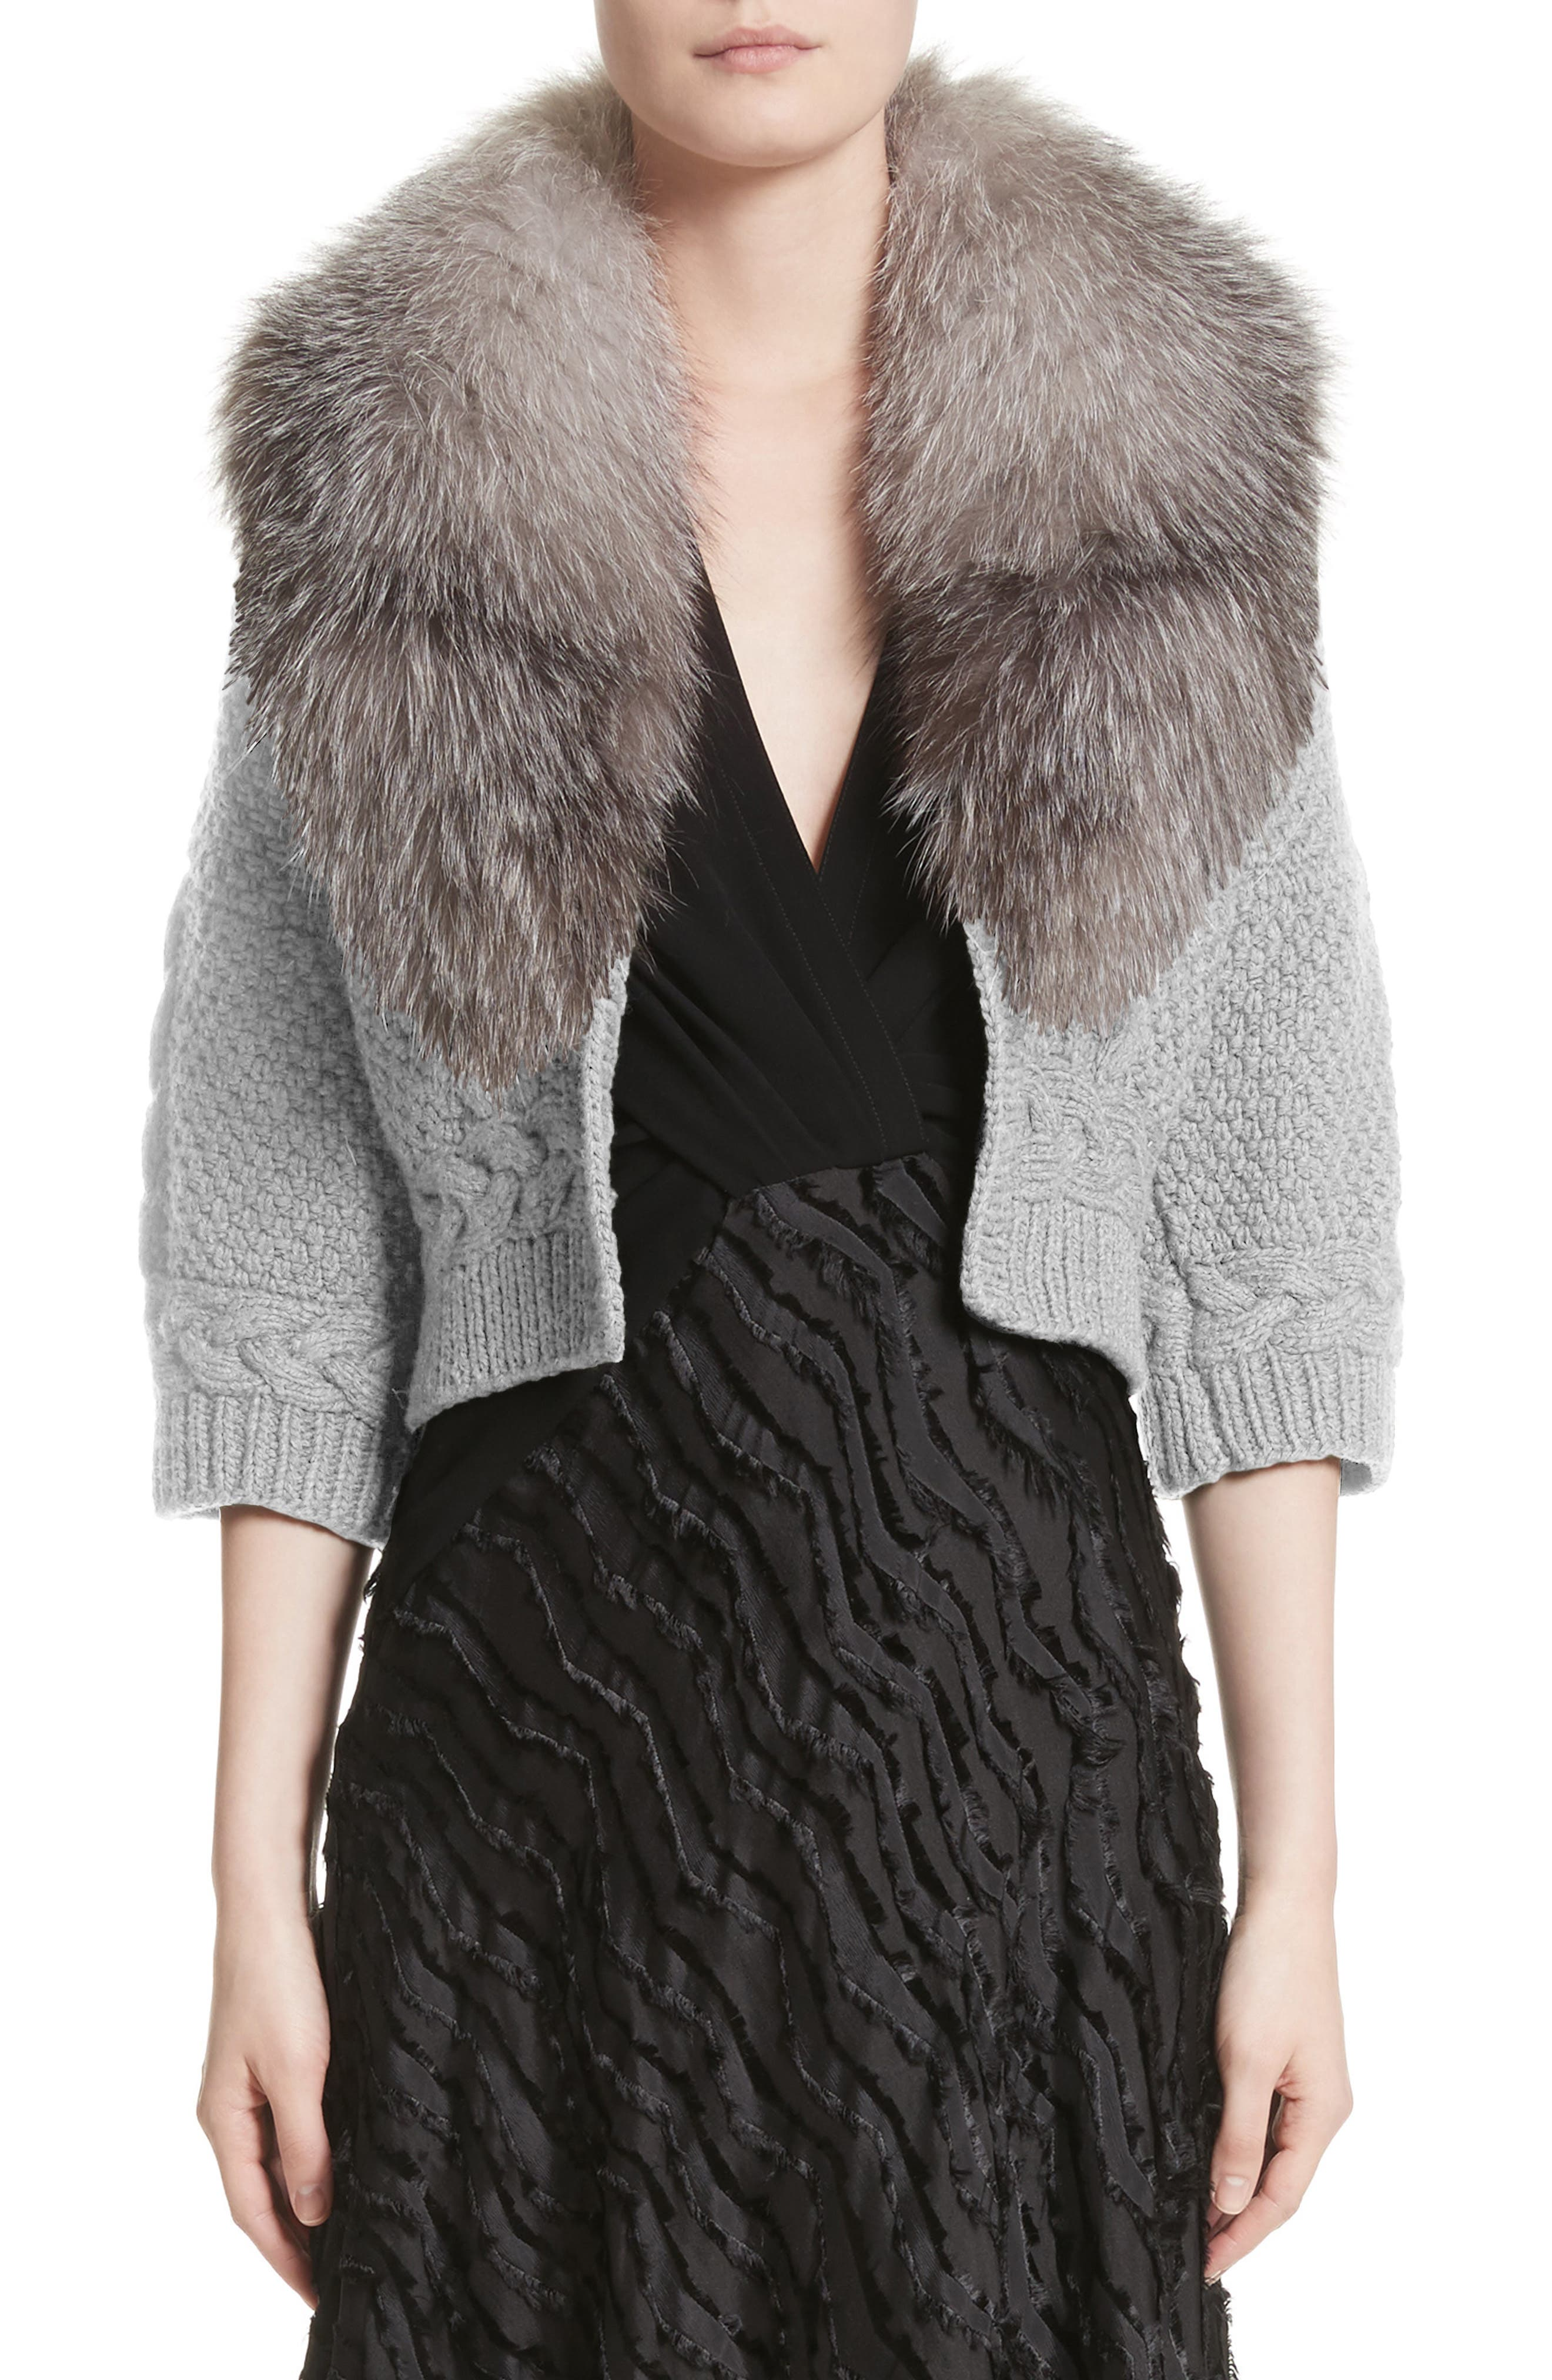 Main Image - Yigal Azrouël Merino Wool & Cashmere Knit Bolero with Removable Genuine Fox Fur Collar